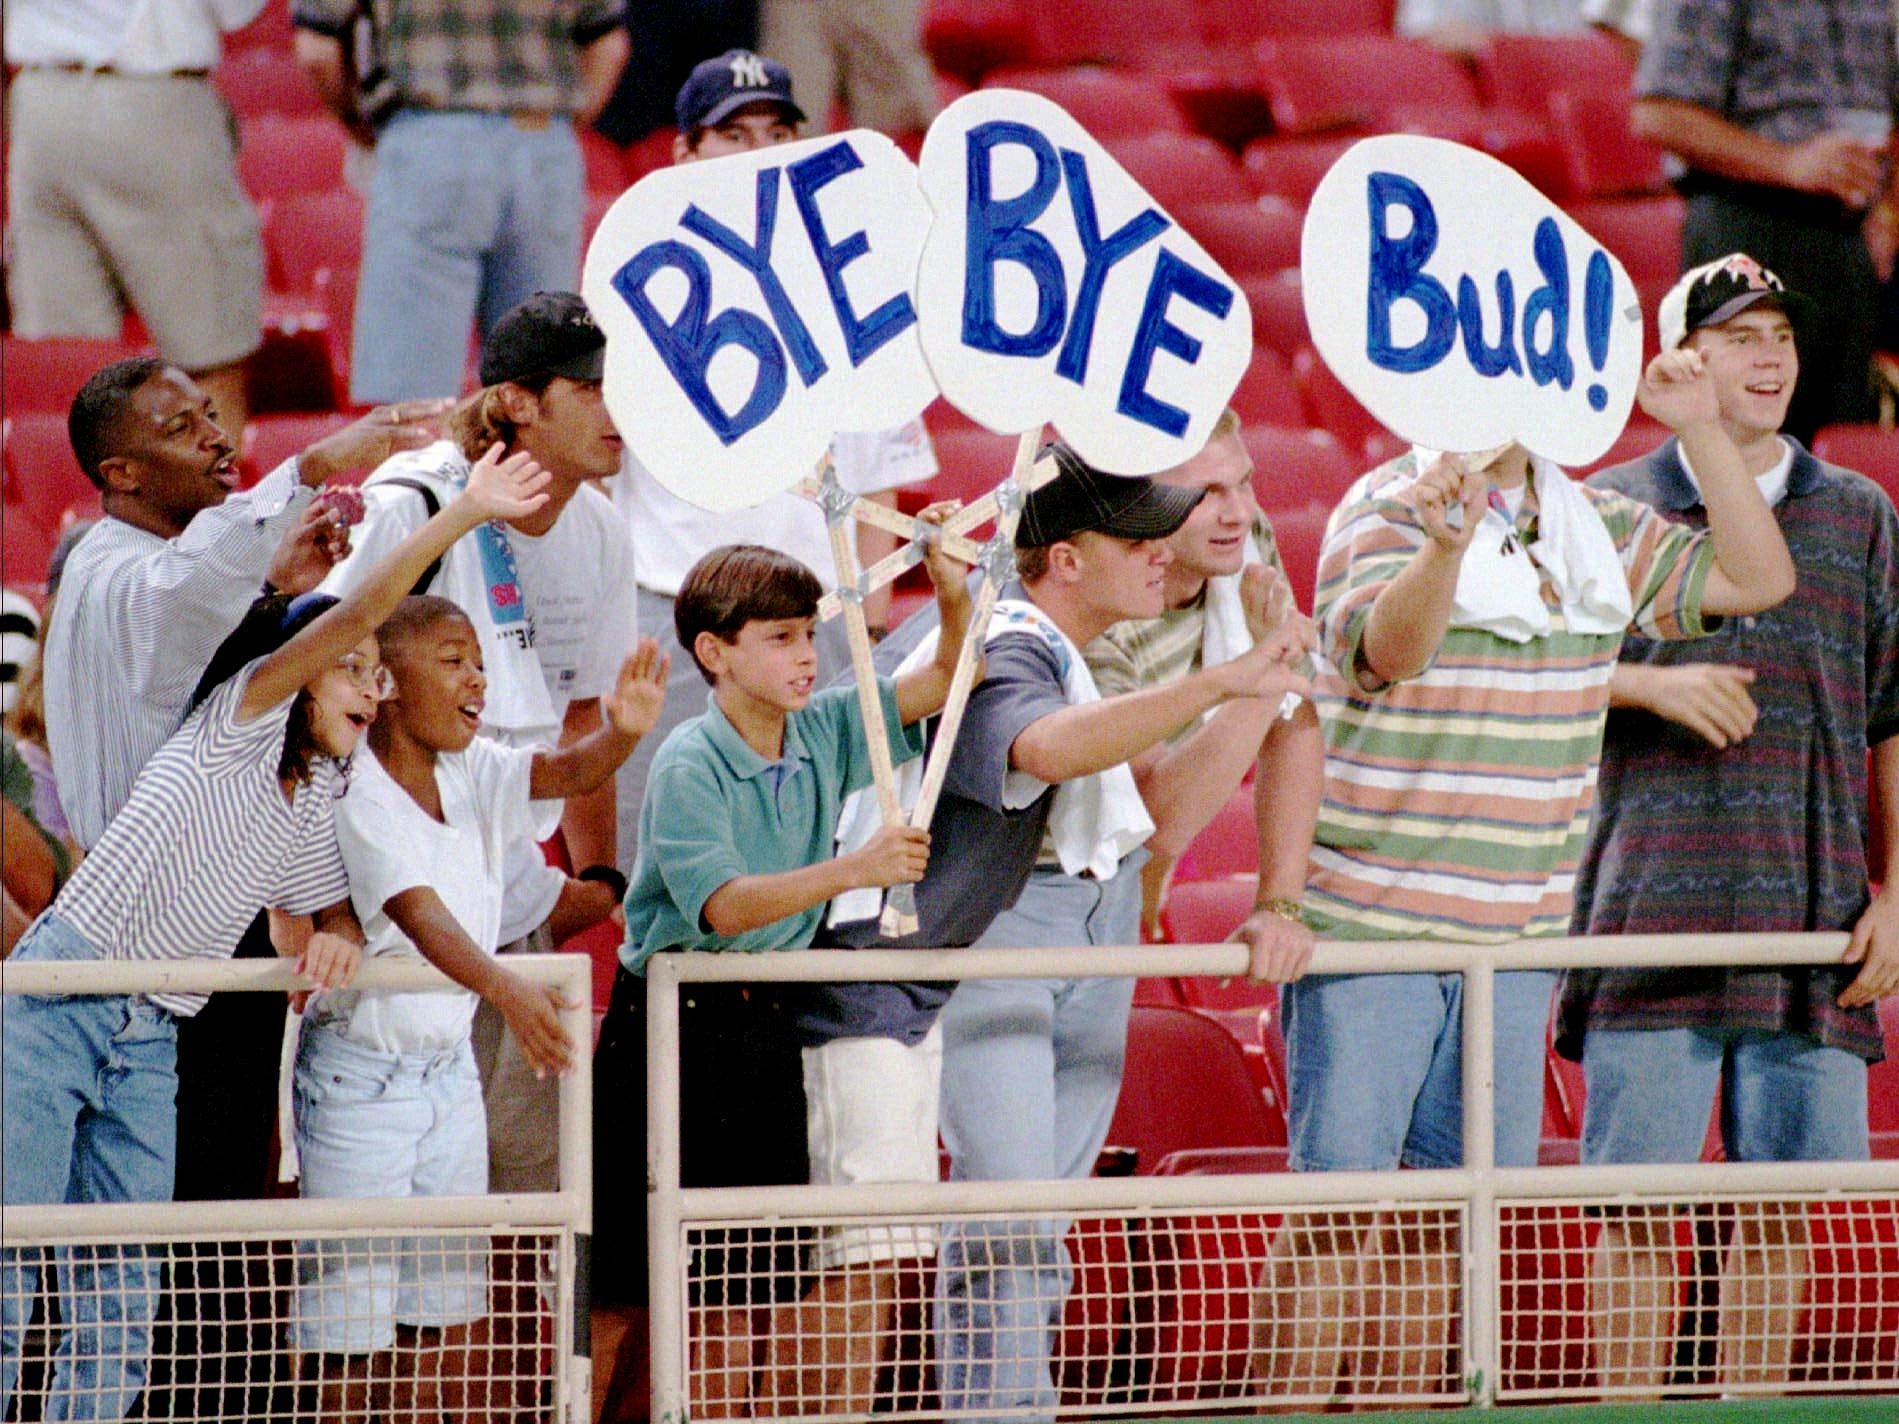 Houston Oilers fans hold up a sign expressing their view on Oilers owner Bud Adams after the game against San Diego Chargers was canceled when the Astrodome field was deemed unplayable Aug. 19, 1995 in Houston. Adams is involved in negotiations to move the team to Nashville, Tenn.